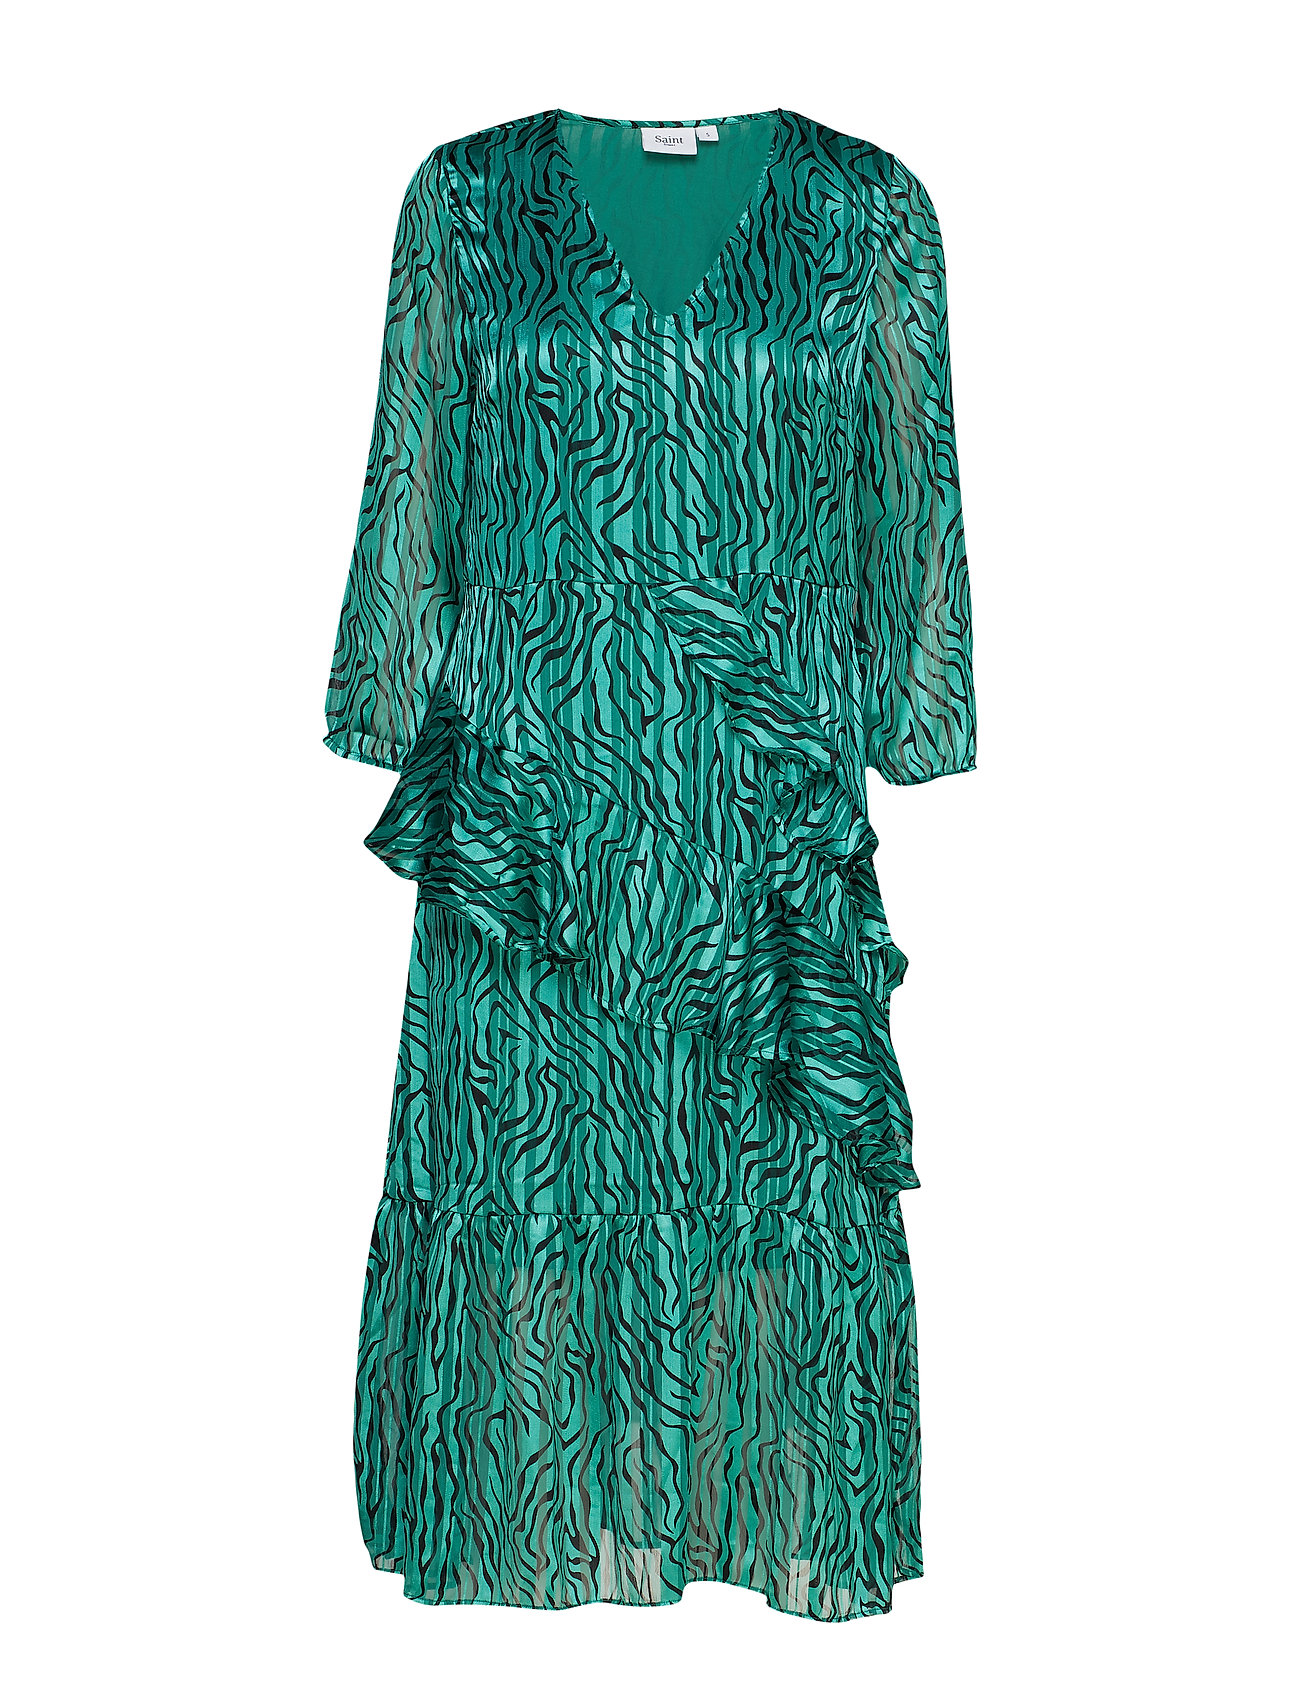 Saint Tropez U6014, DRESS CALF WOVEN - GREENLAKE(S)